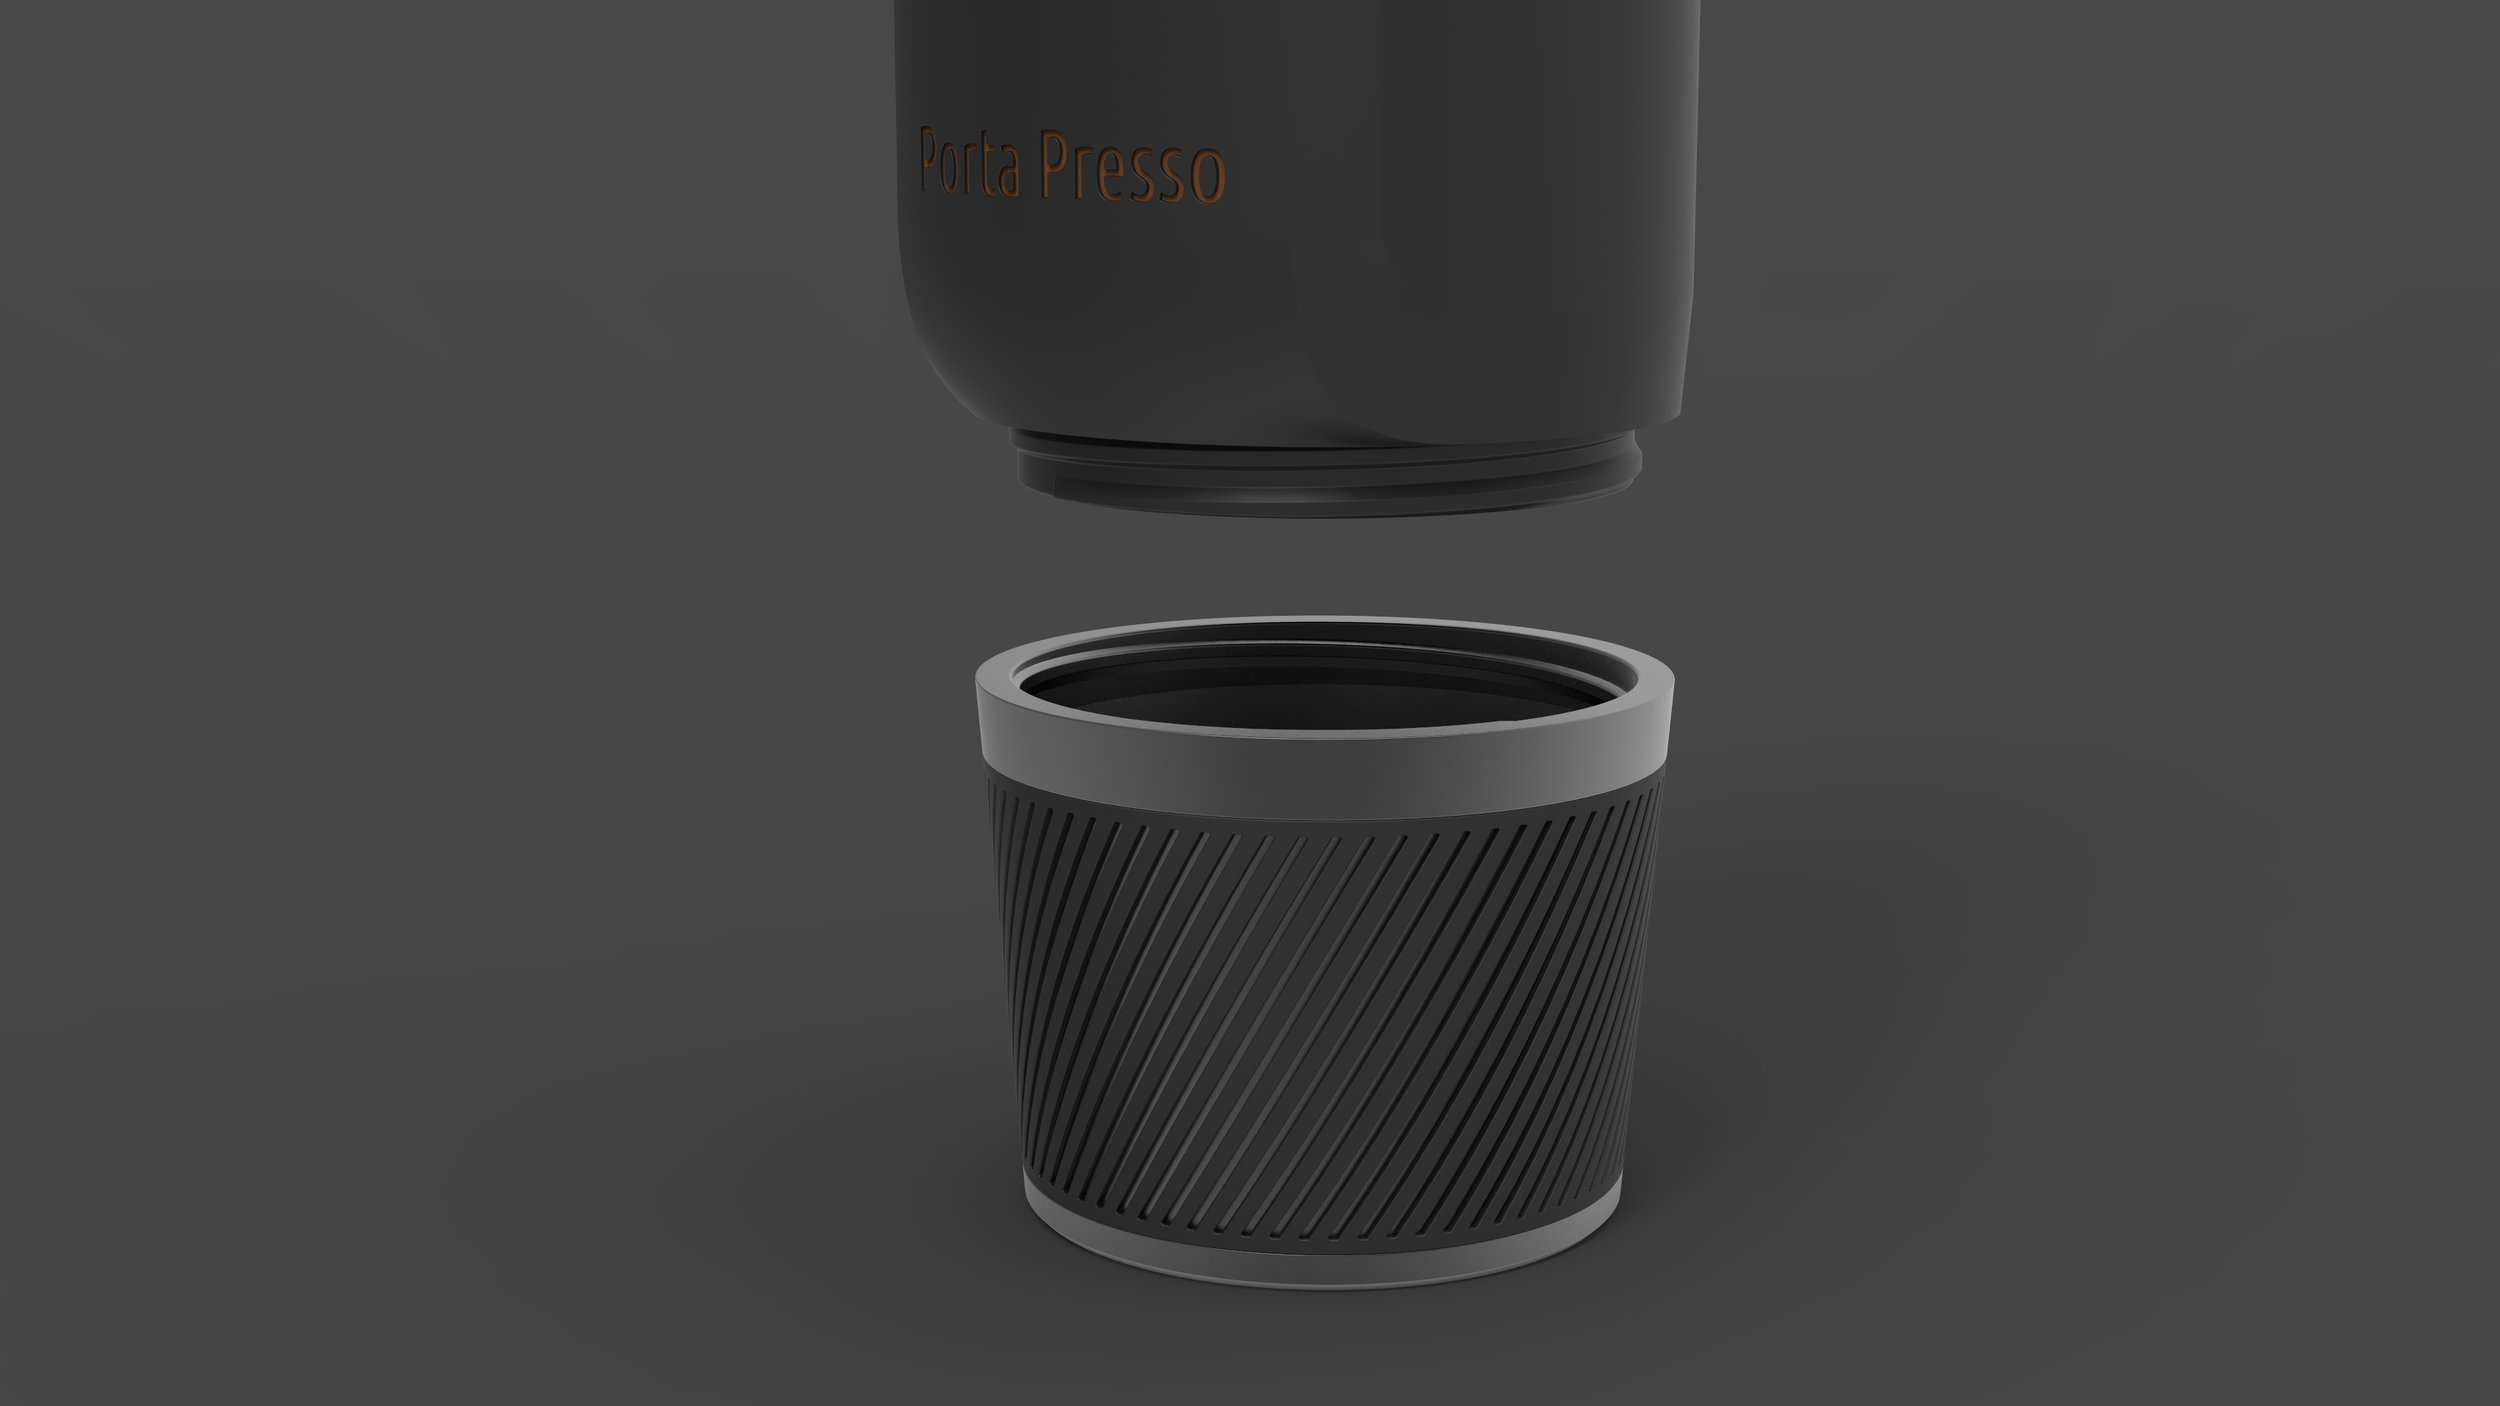 Drinking cup - The Porta Presso Cup has been intuitively designed so that it is sleek and minimal, yet it fits into a standard cup holder. The Porta Presso cups come in an assortment of colours so that you can get the cup that is right for you. The cup is able to be seamlessly attached and detached from the Porta Presso machine, curating a whole new user experience.